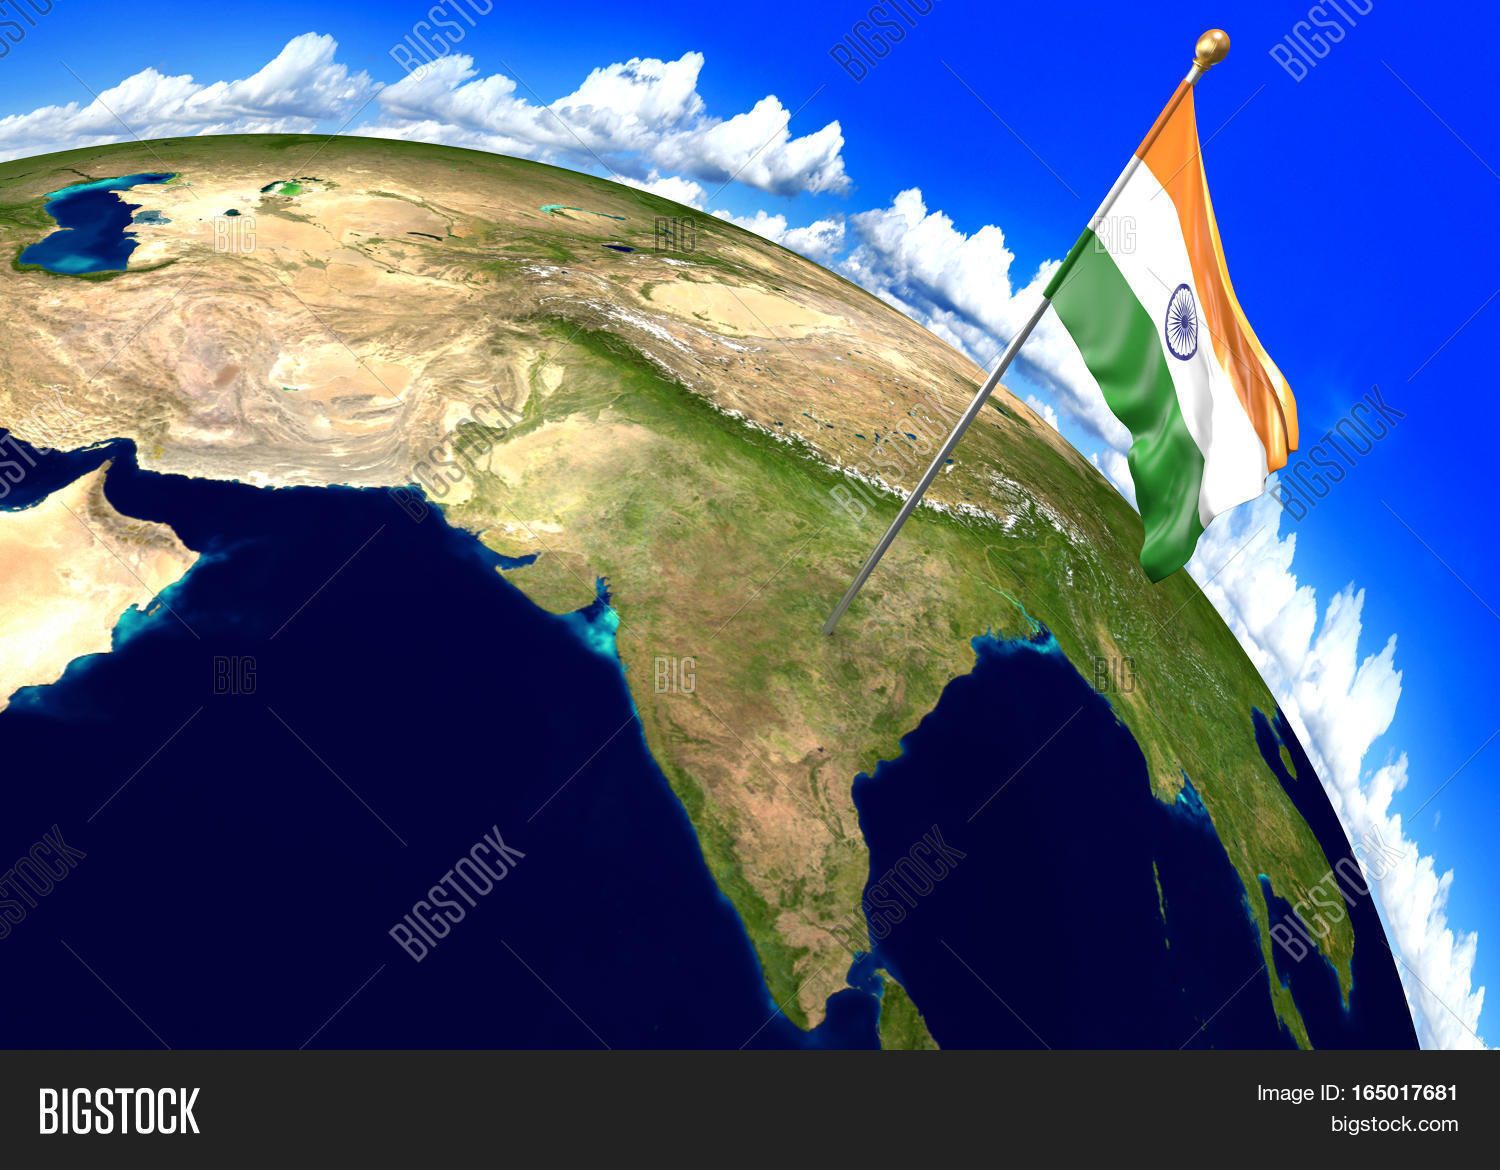 India national flag image photo free trial bigstock india national flag marking the country location on world map 3d rendering parts of gumiabroncs Images